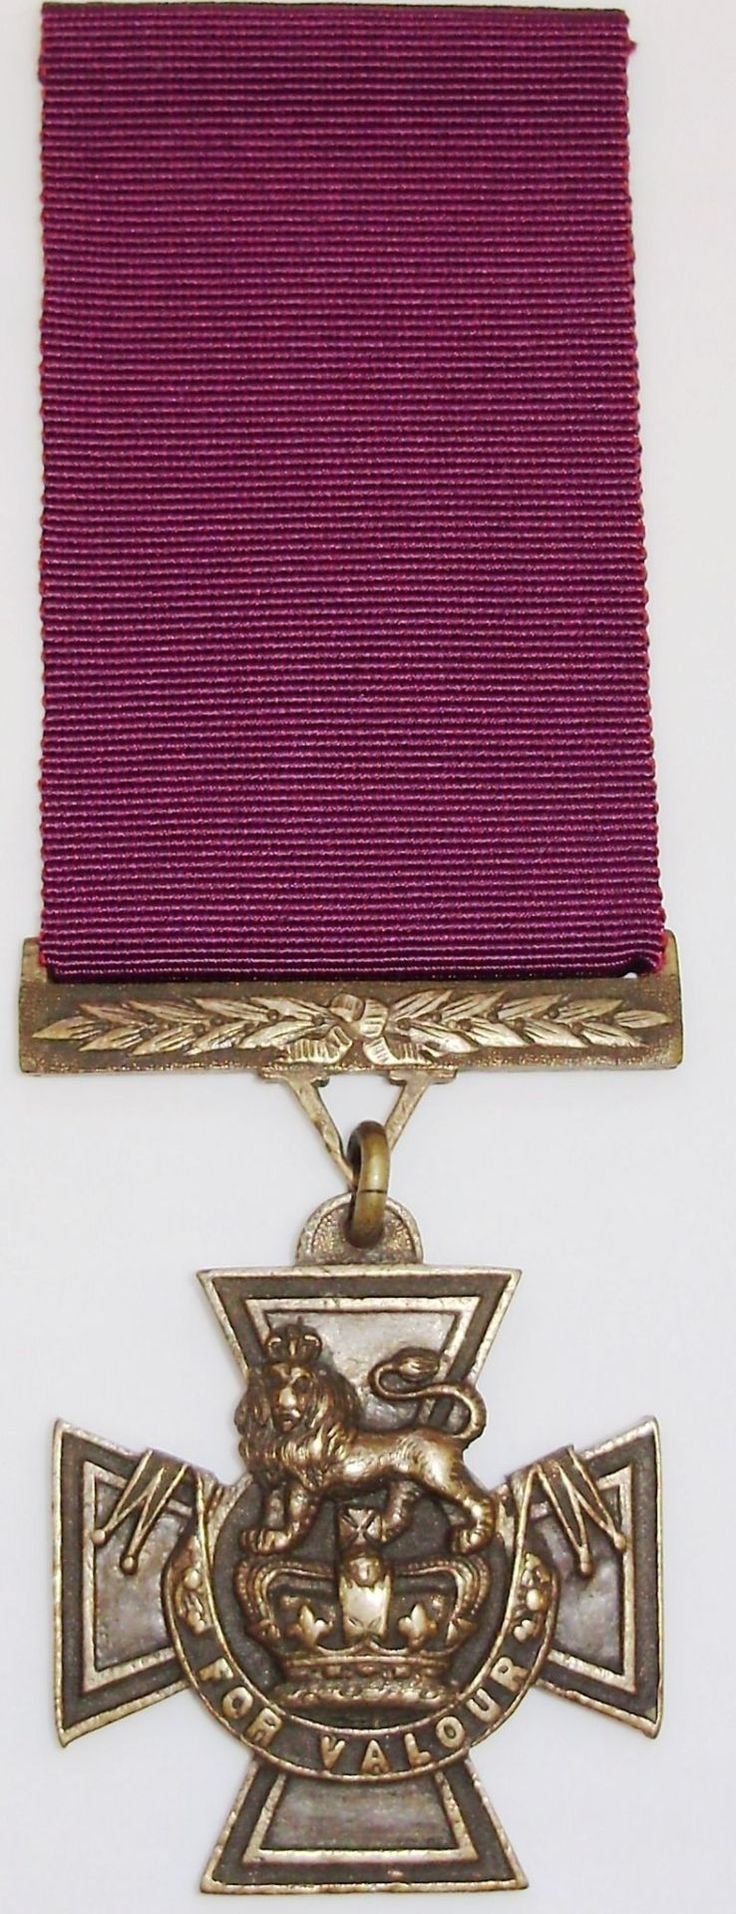 The Victoria Cross...On this day 29th January 1856 Queen Victoria instituted Britain's highest military decoration, the Victoria Cross, (VC) The medal is awarded to British and commonwealth armed forces for outstanding bravery on the field of battle. The medal was originally made from the metal of cannon captured from the Russians at Sevastopol until the supply came to an end in 1942